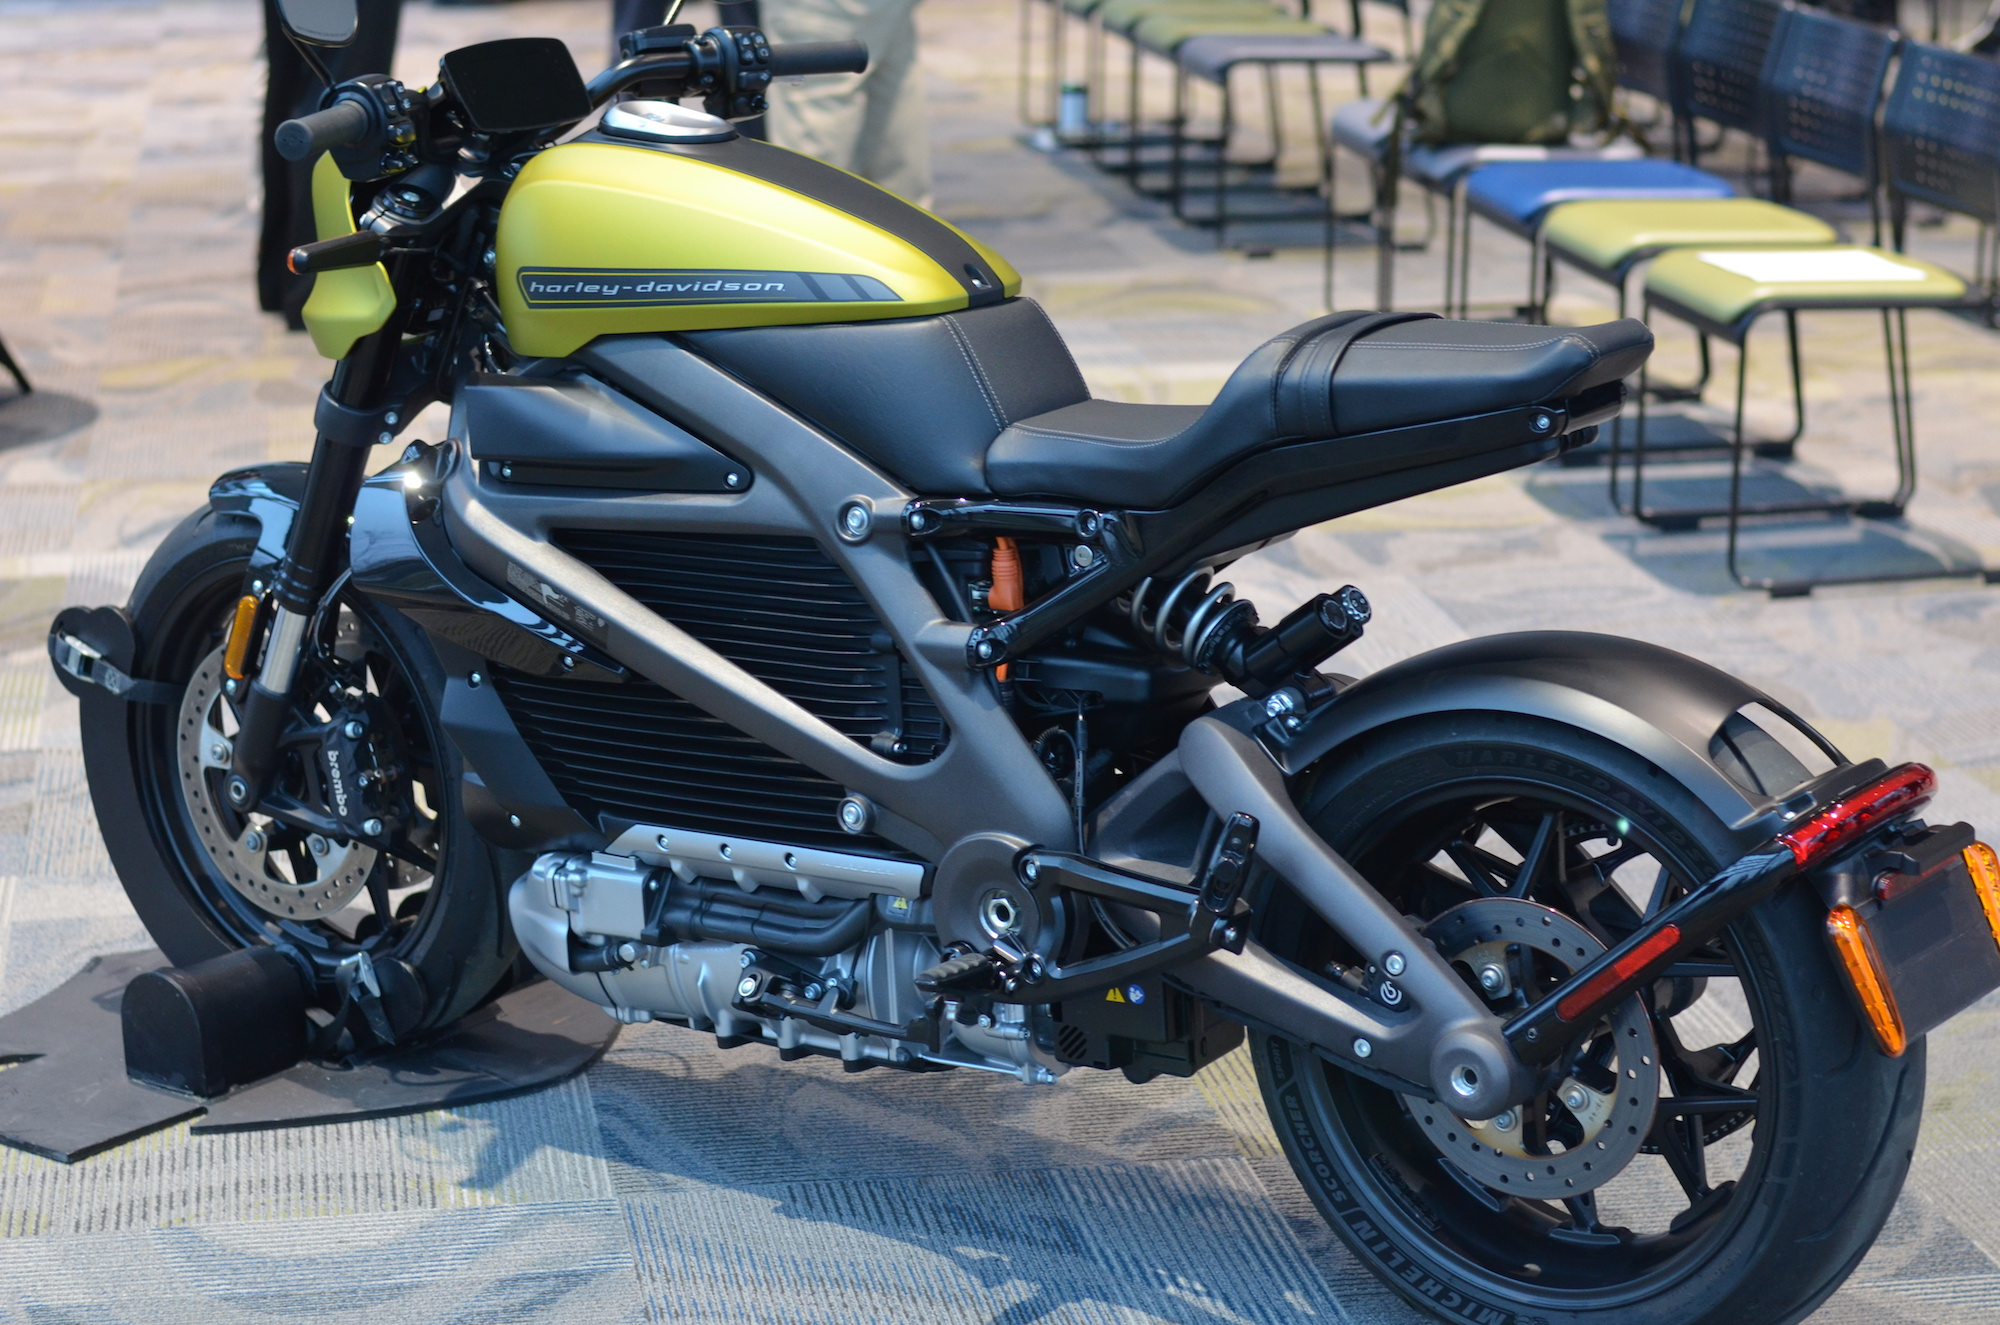 harley davidson unveils livewire electric motorcycle price Mini Moto Honda Electric Motorcycle Wiring